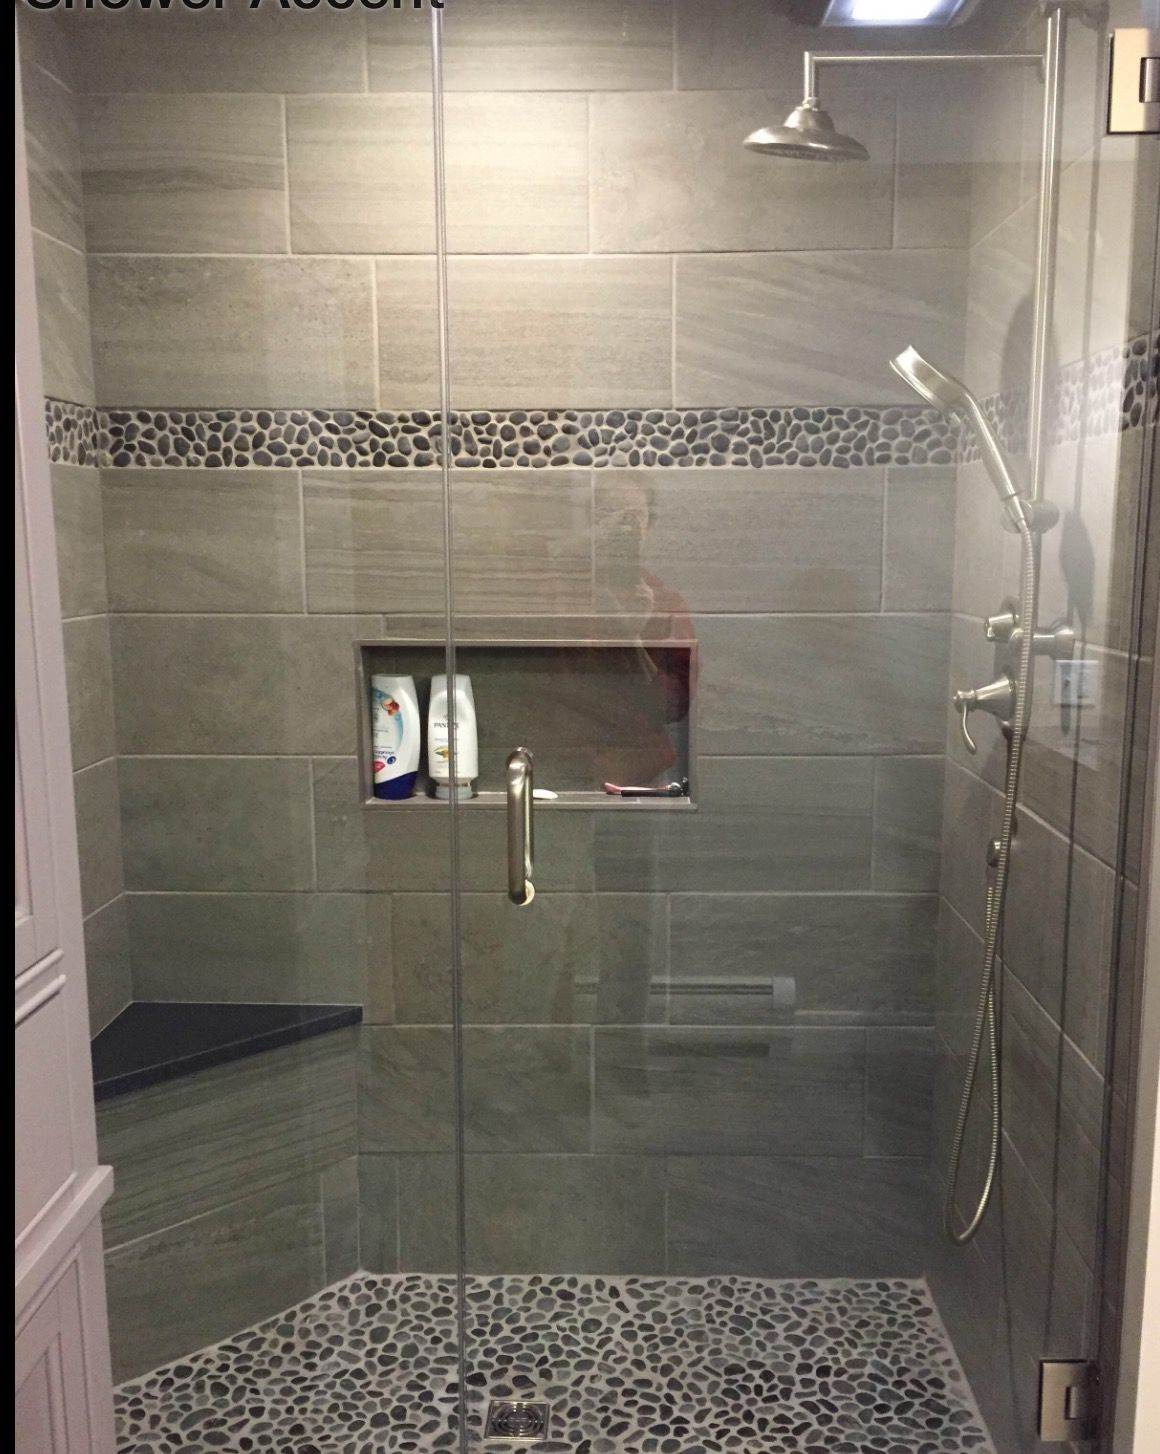 Shower Chair Vs Tub Bench Karlstad Cover Basement Bathroom Ideas On Budget Low Ceiling And For